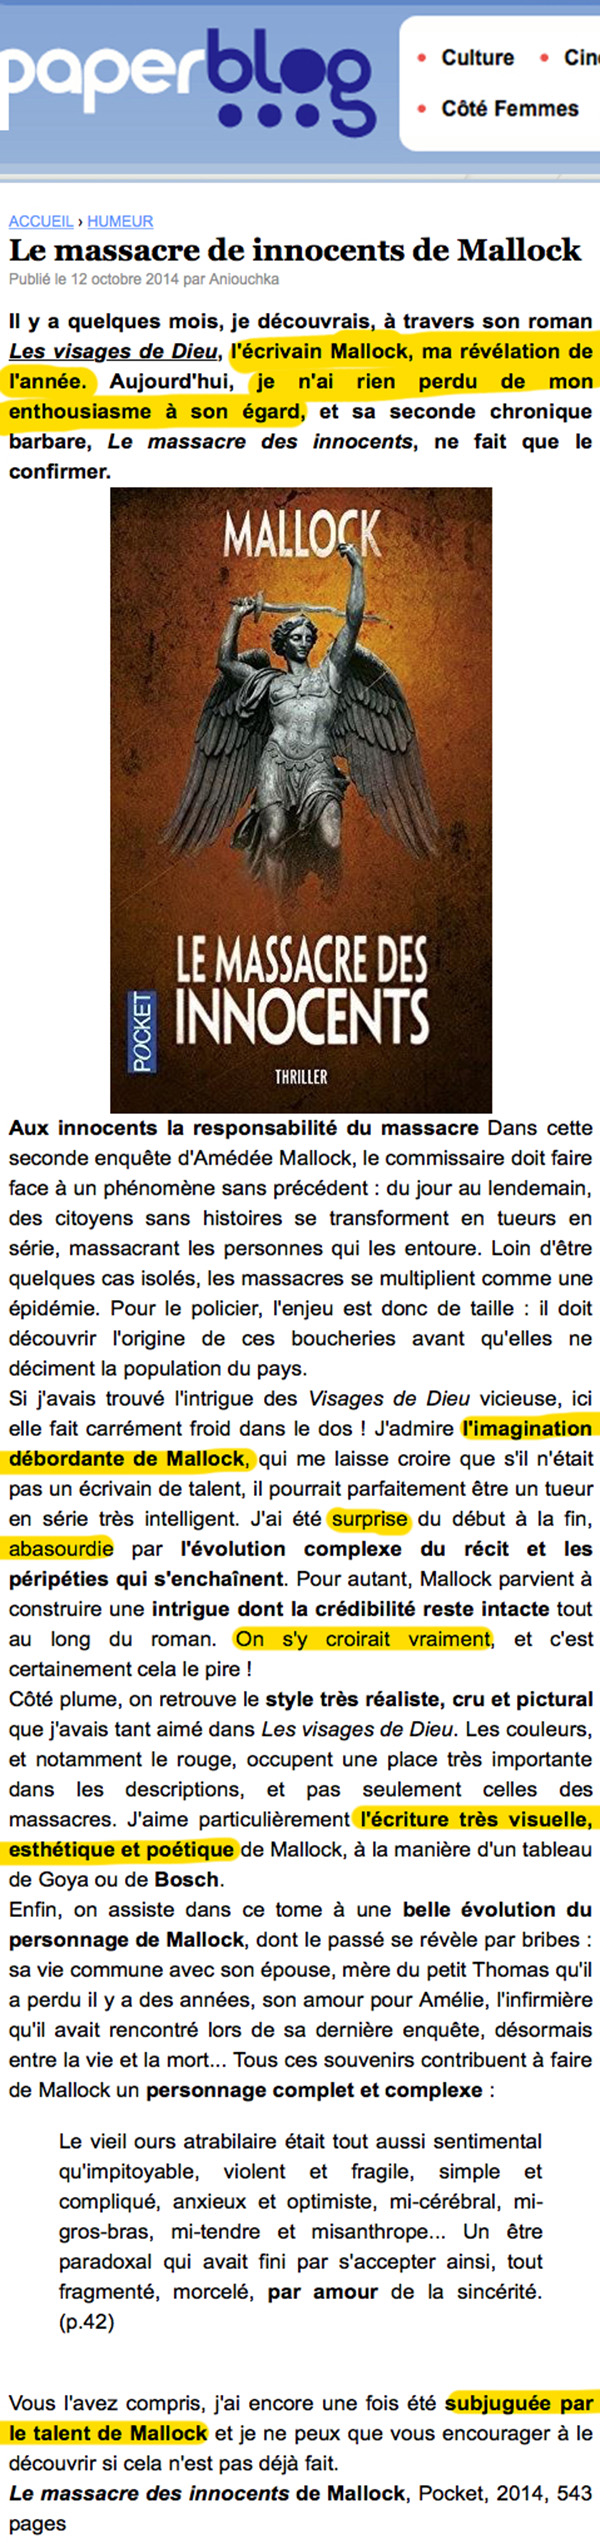 paperblog le massacre  innocents mallock